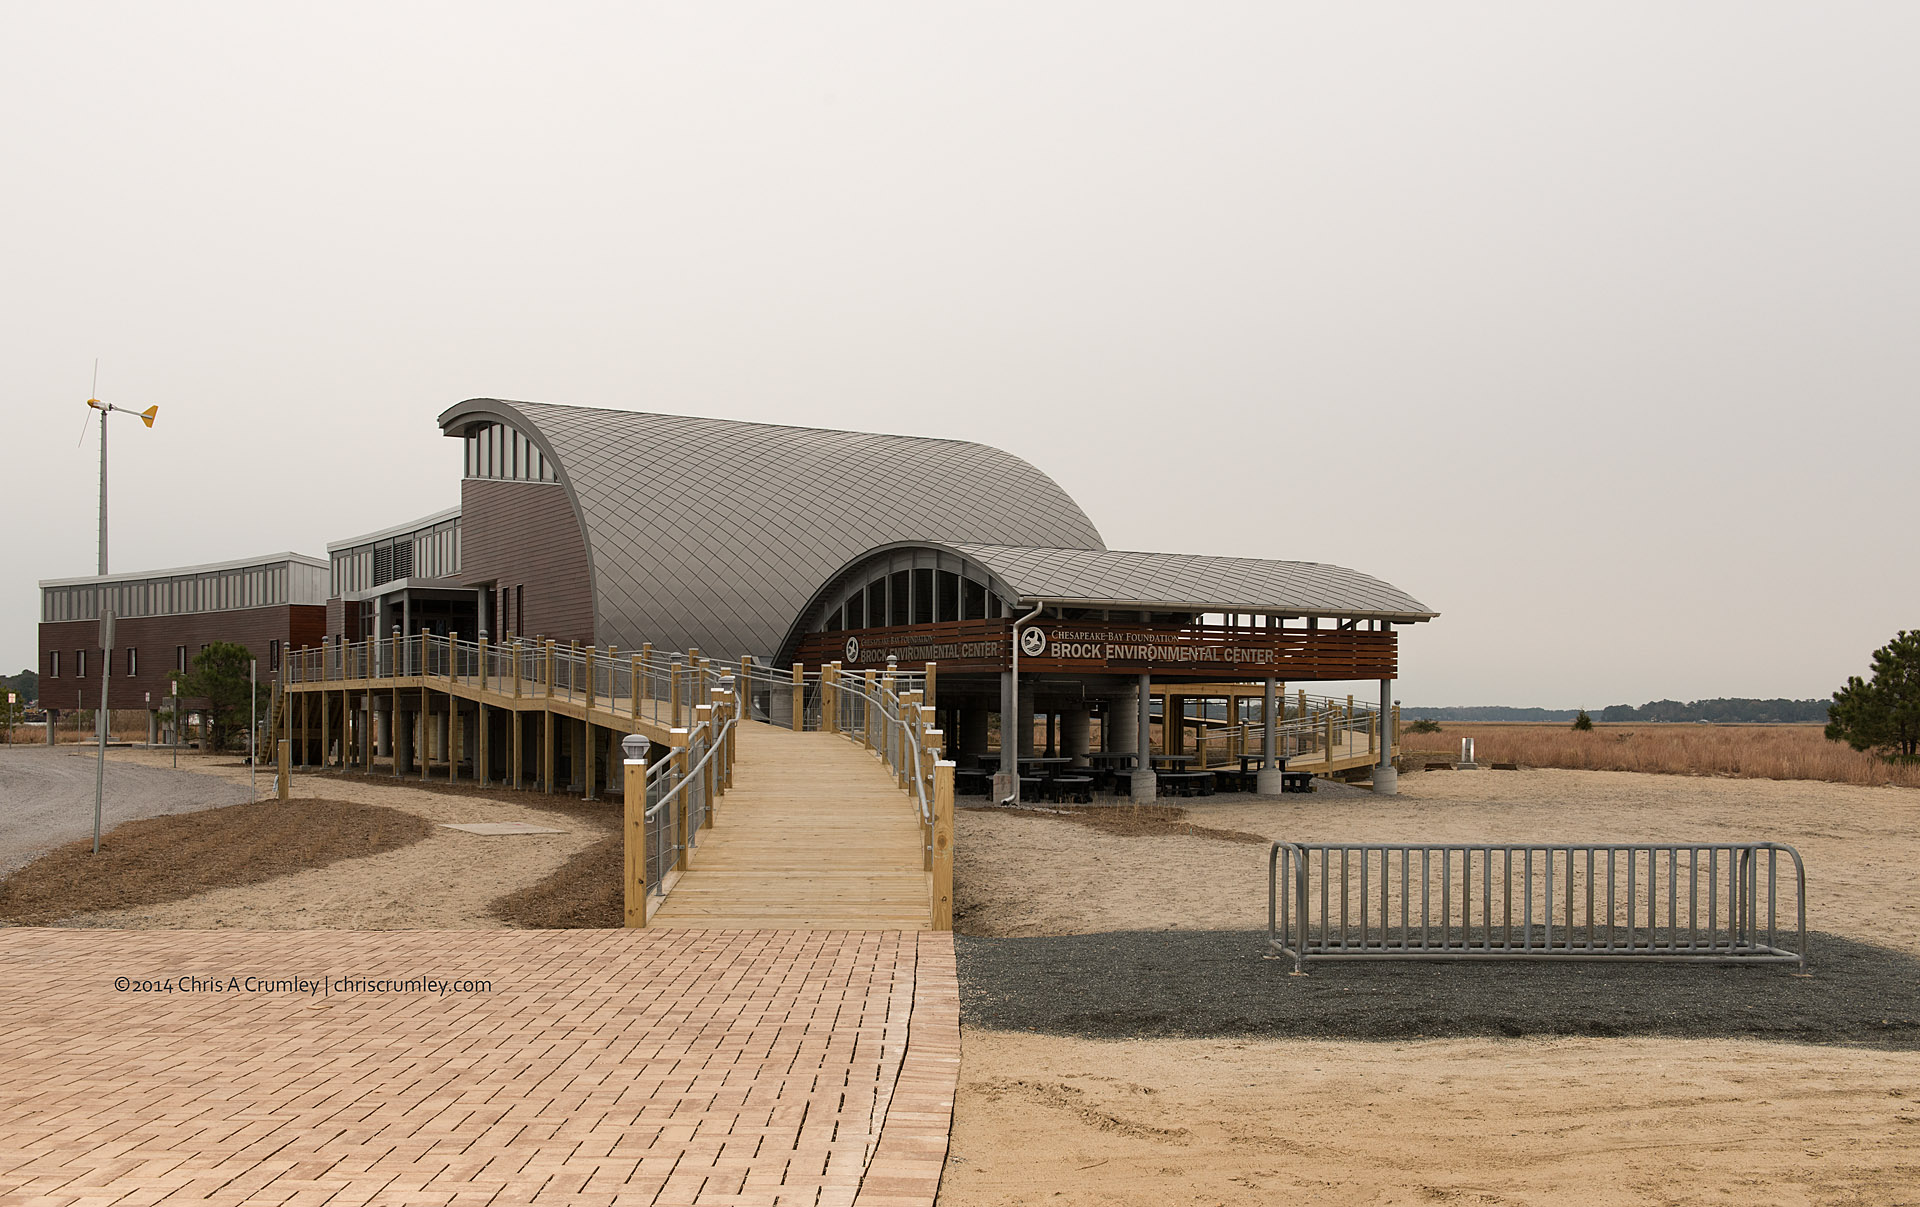 Chesapeake Bay Foundation Brock Environmental Center